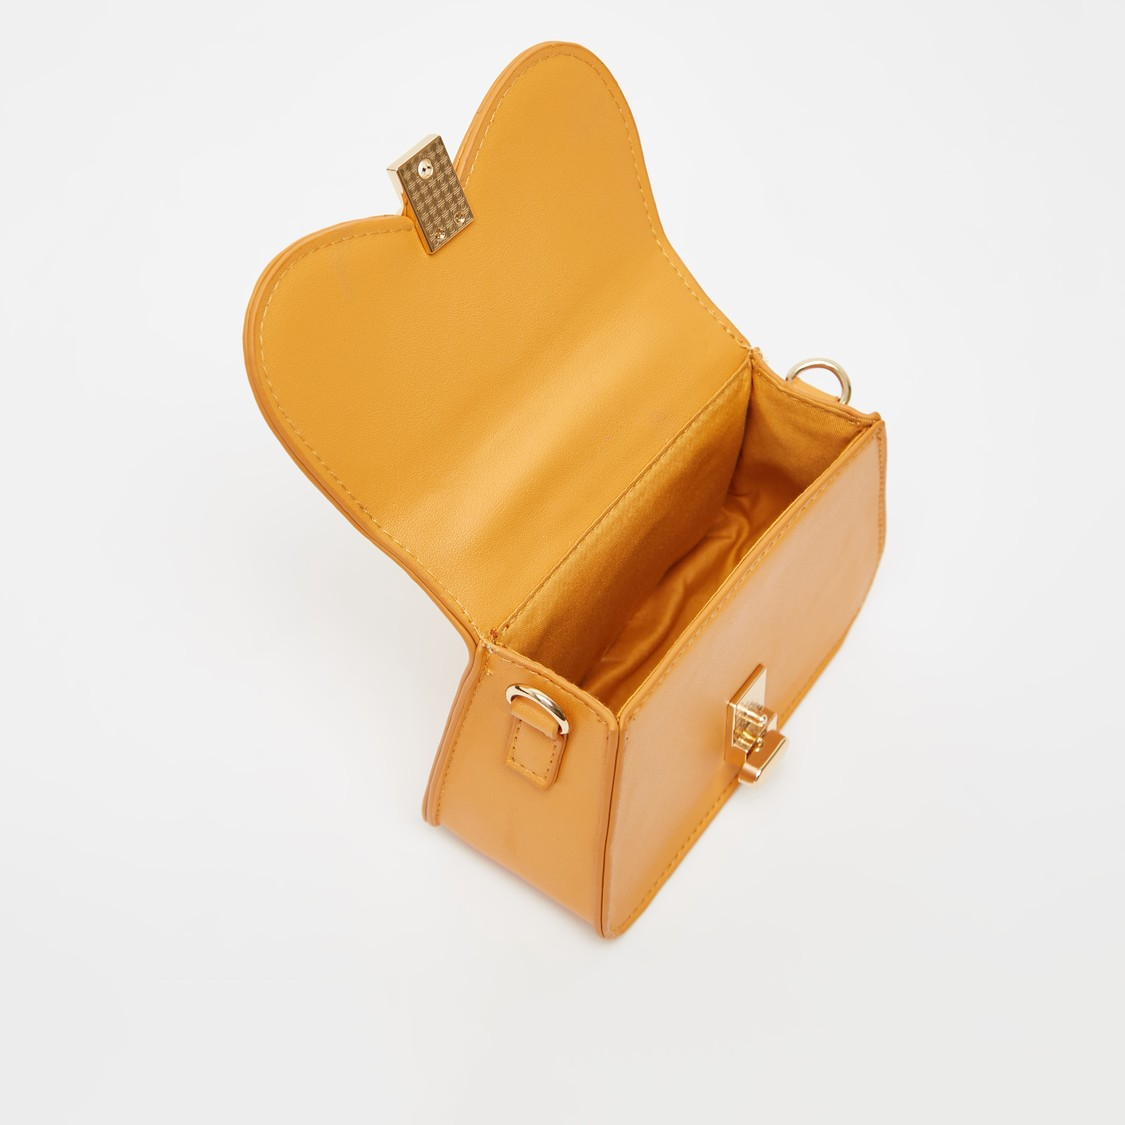 Solid Satchel Bag with Detachable Strap and Grab Handle